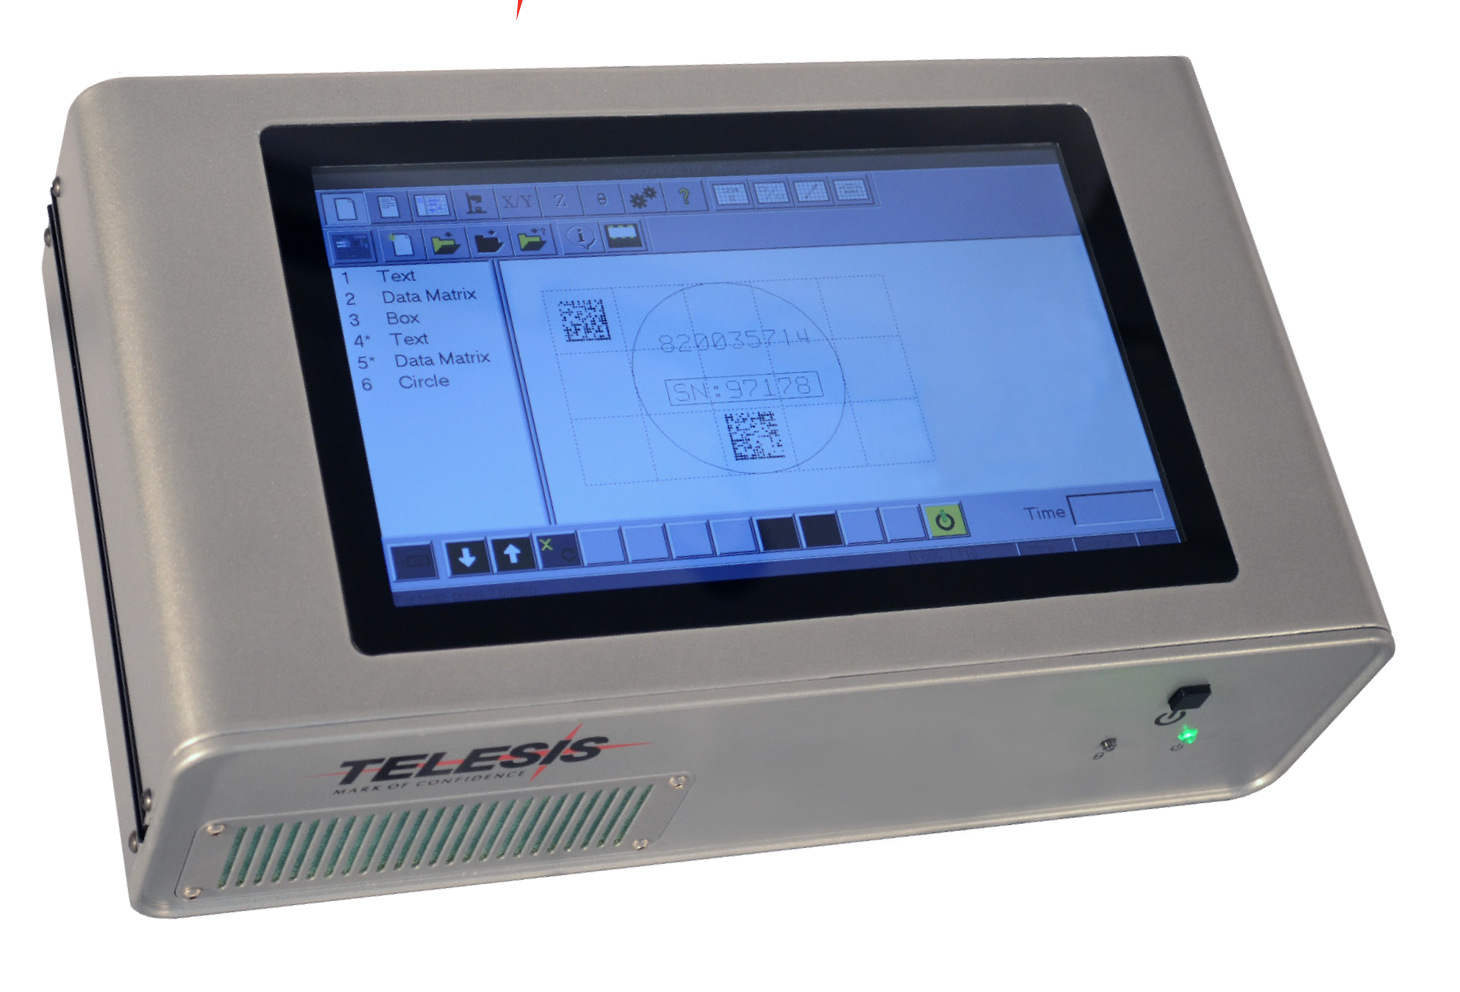 TMC600 Marking System Controller